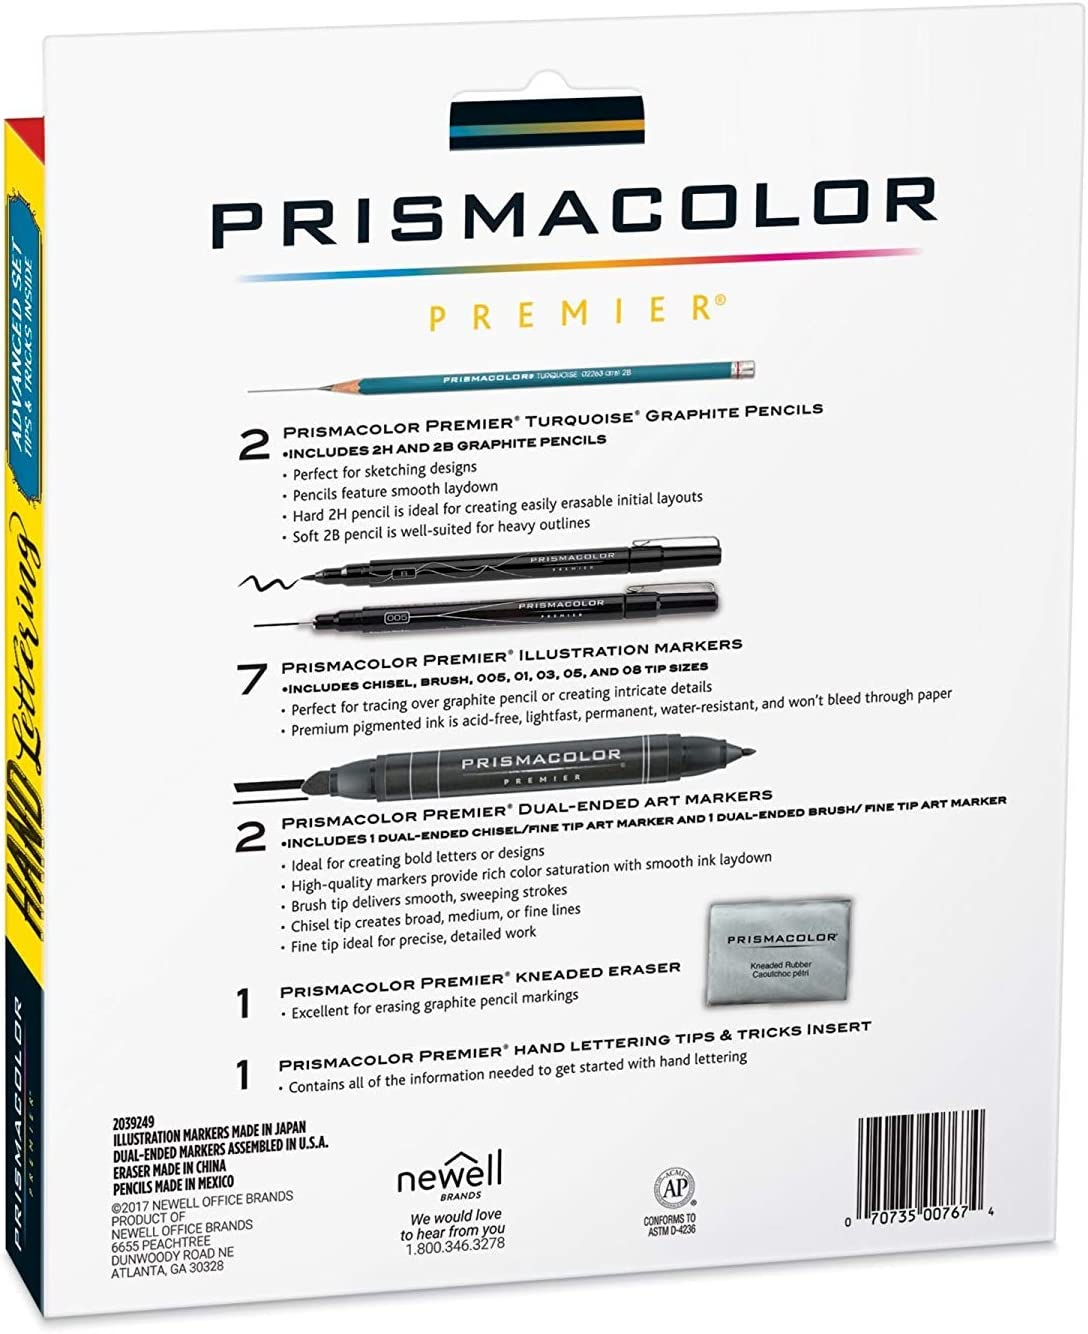 Prismacolor Premier Beginner Hand Lettering Set with Illustration Markers Pencils 8 Count Eraser and Tips Pamphlet Art Markers